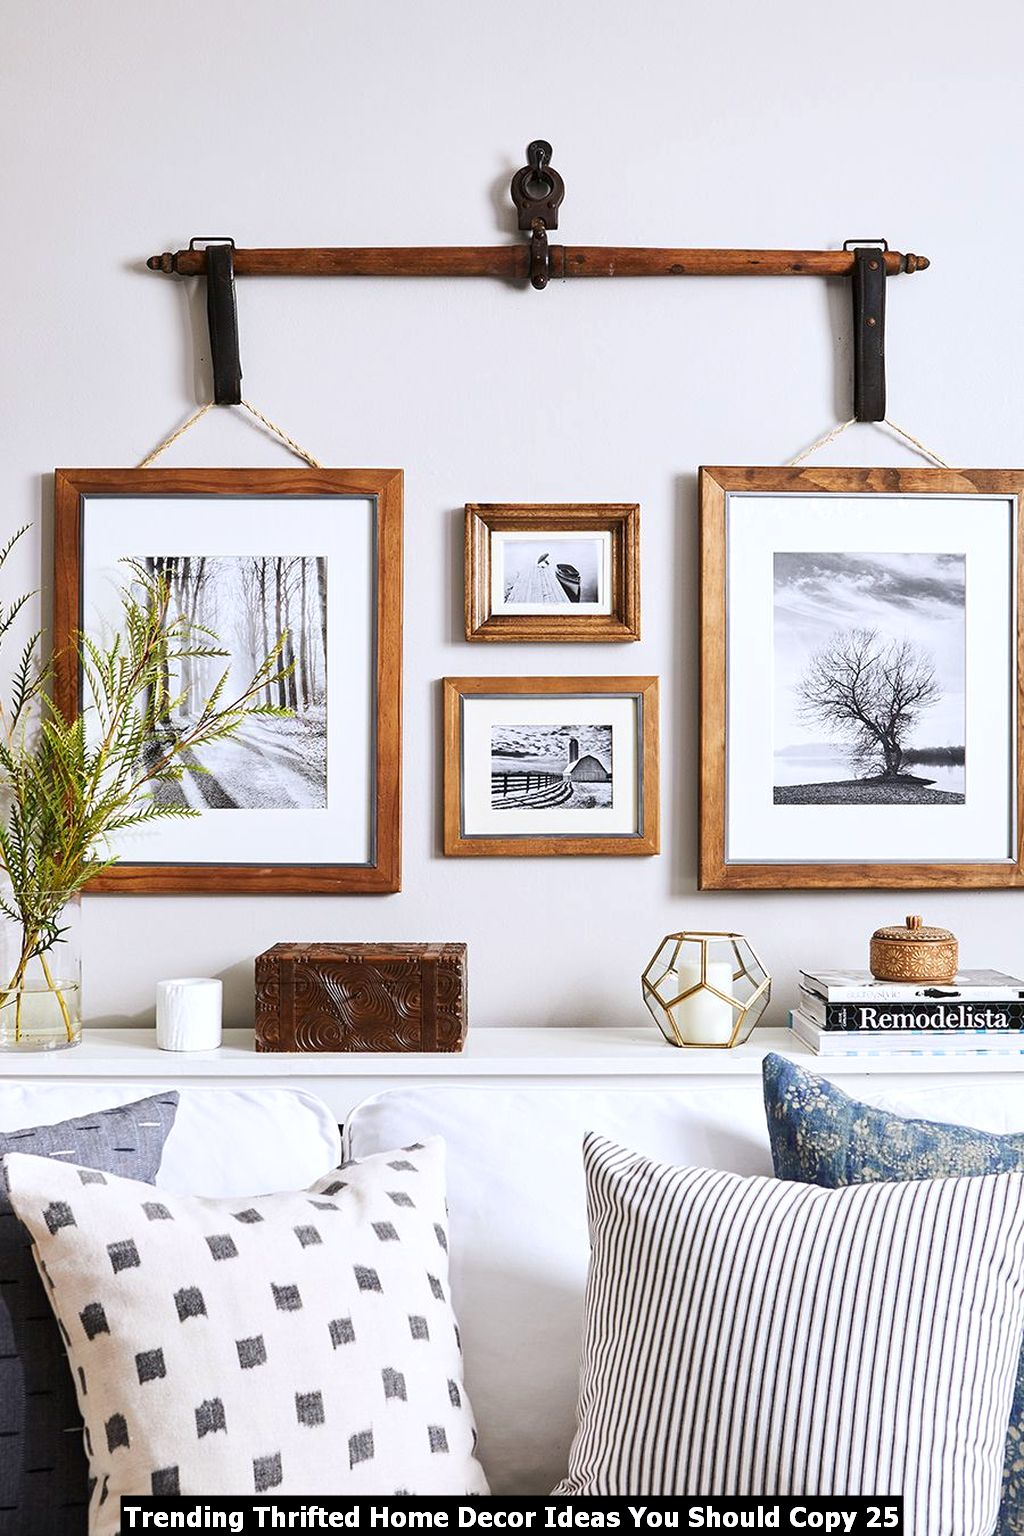 Trending Thrifted Home Decor Ideas You Should Copy 25